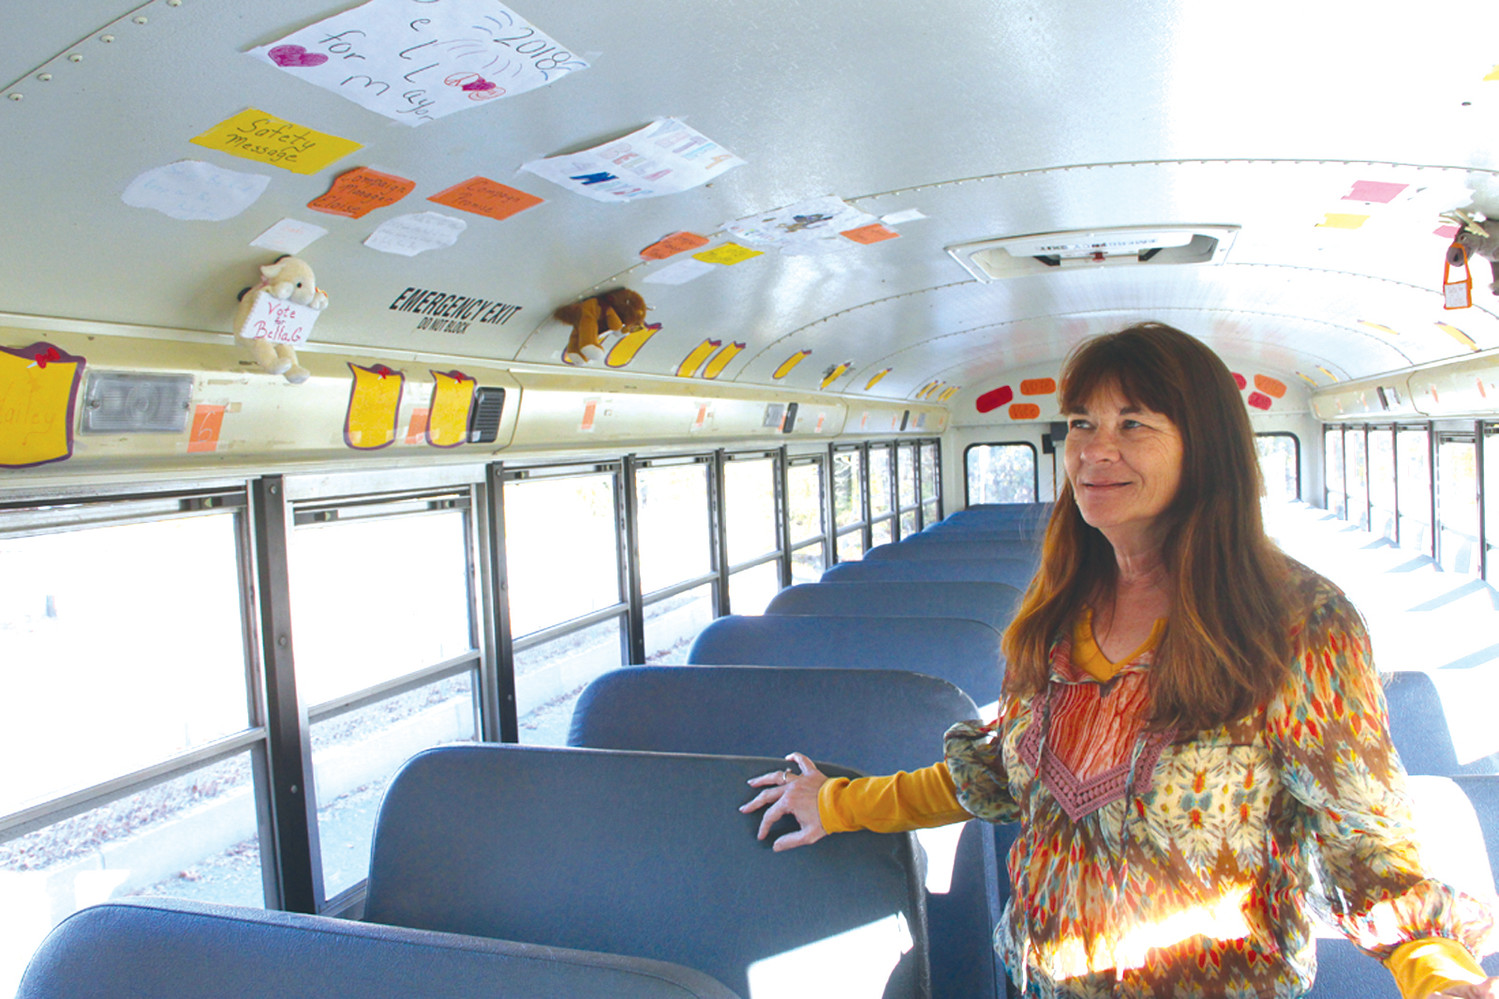 CAMPAIGN ORGANIZER: Bus driver Bre Paine came up with the six-week campaign as a fun way for students to be aware of bus safety.